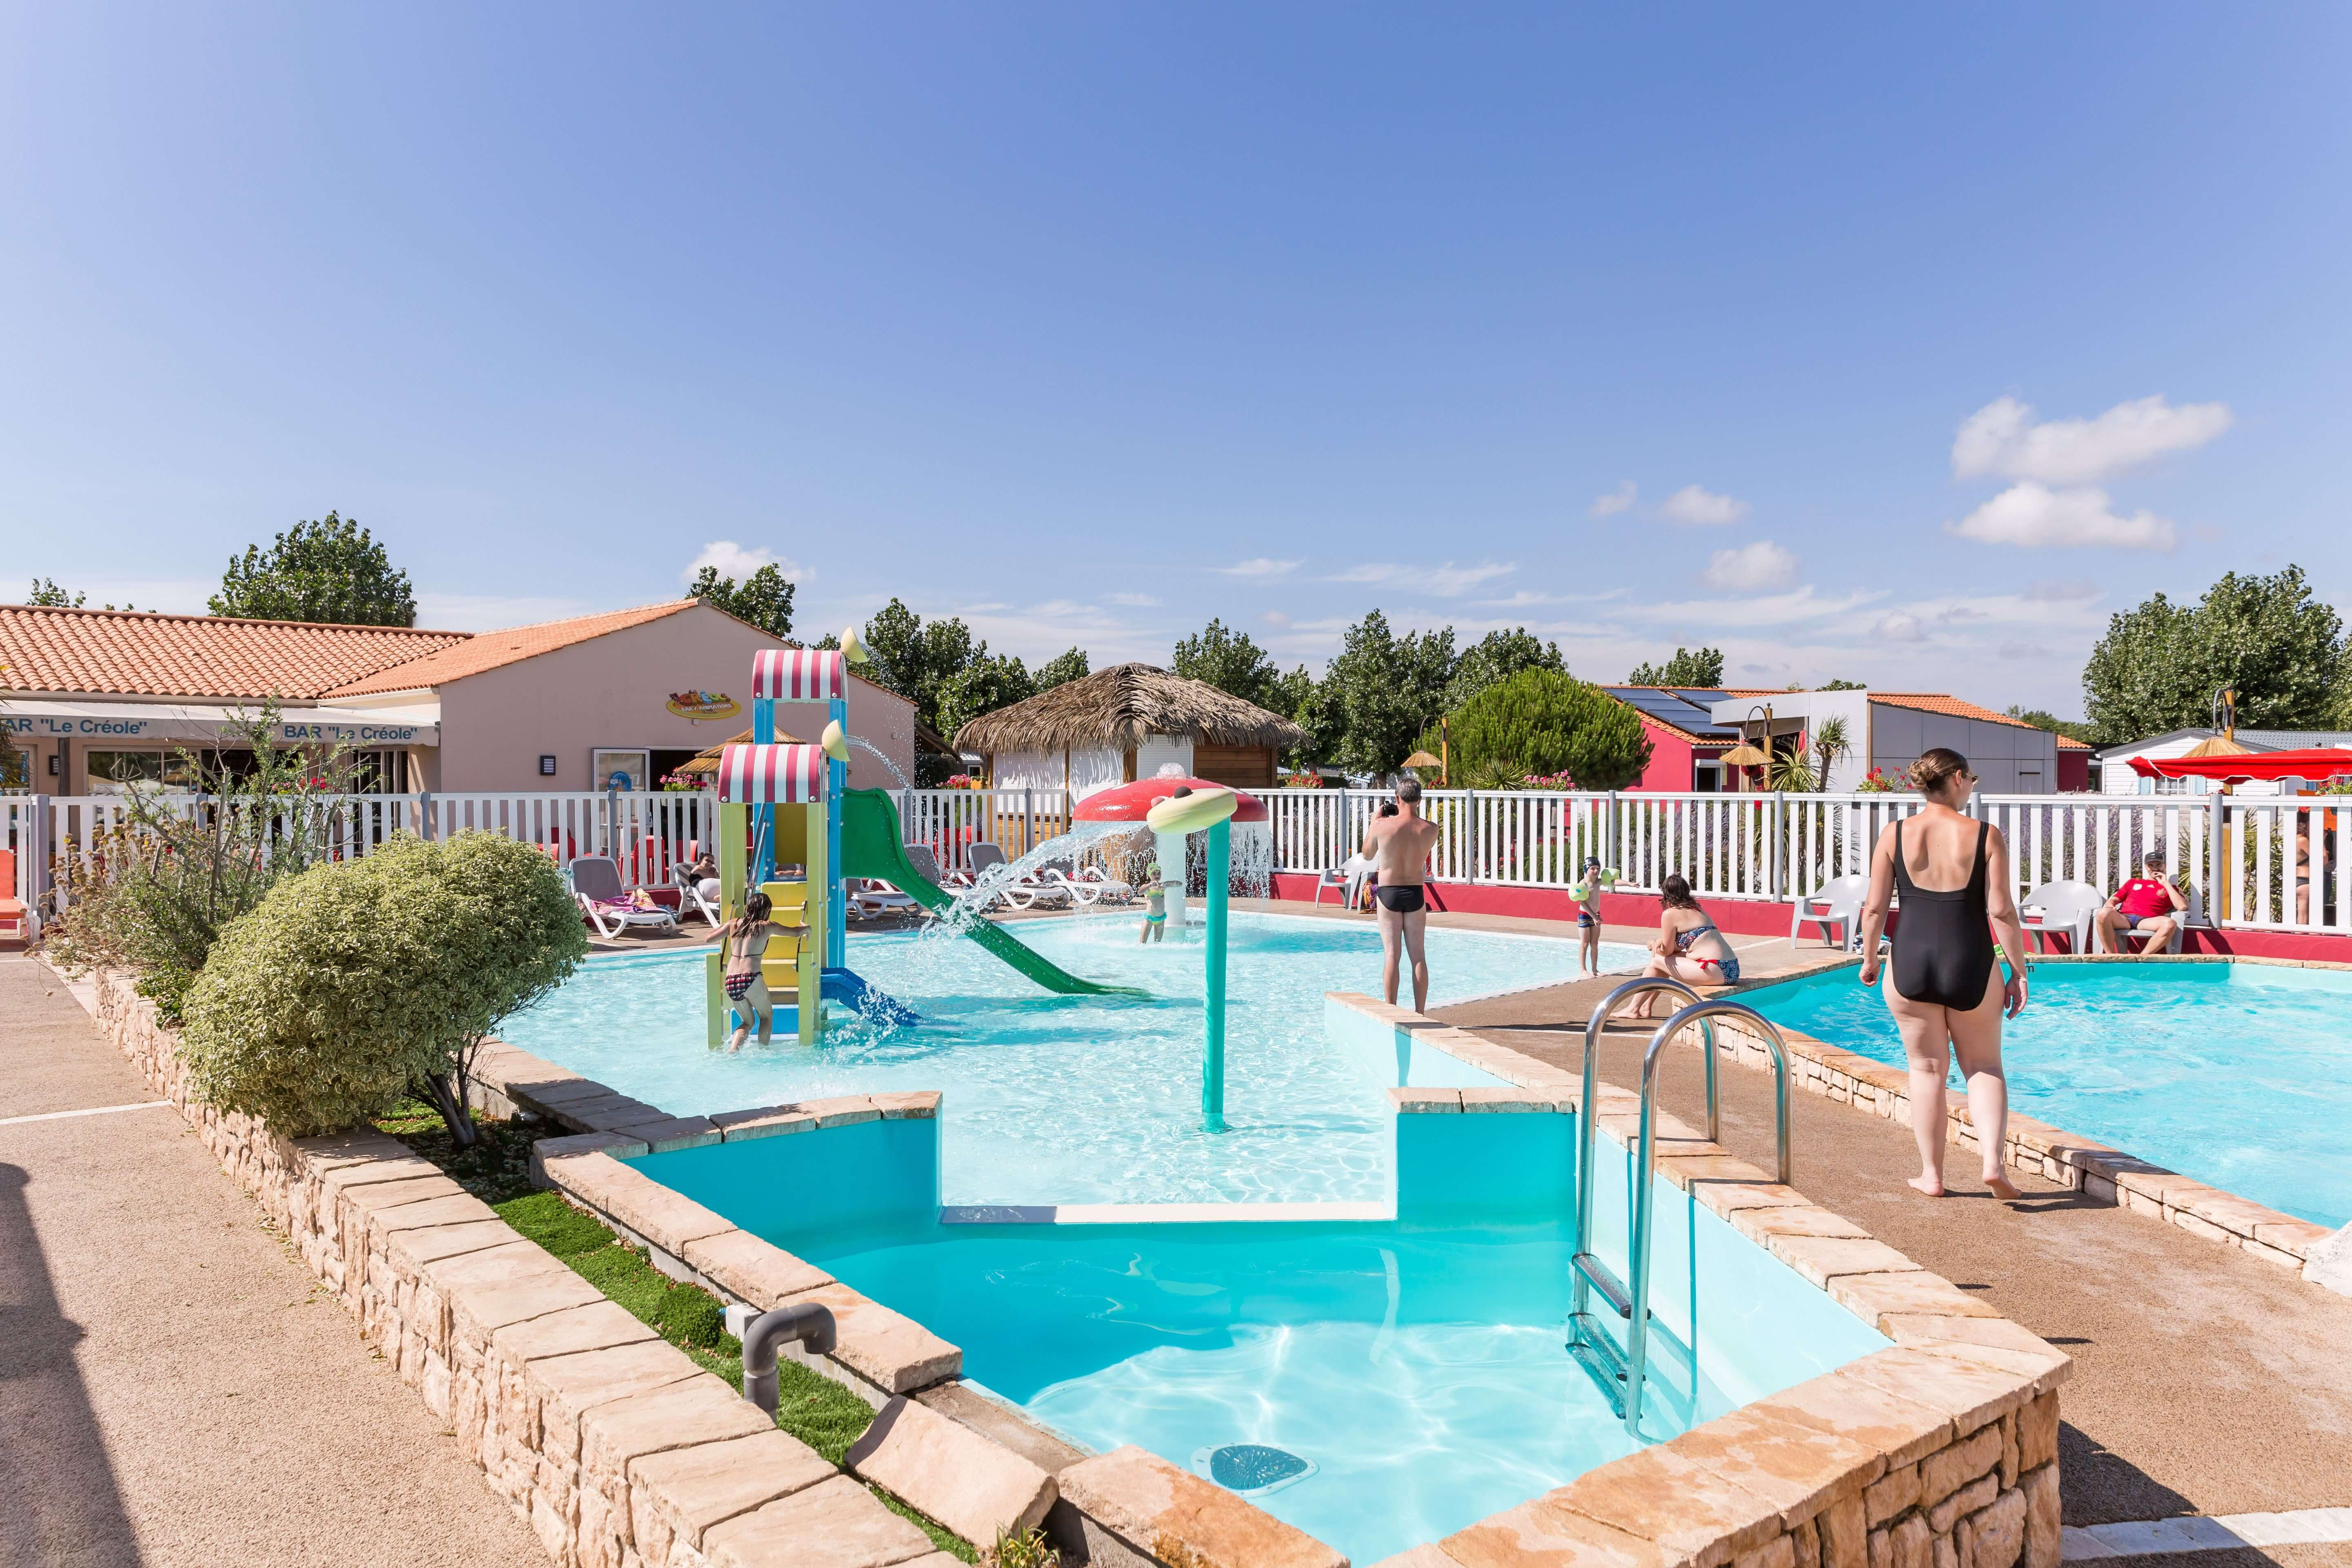 Holidays at the campsite La Pomme de Pin - St Hilaire de Riez